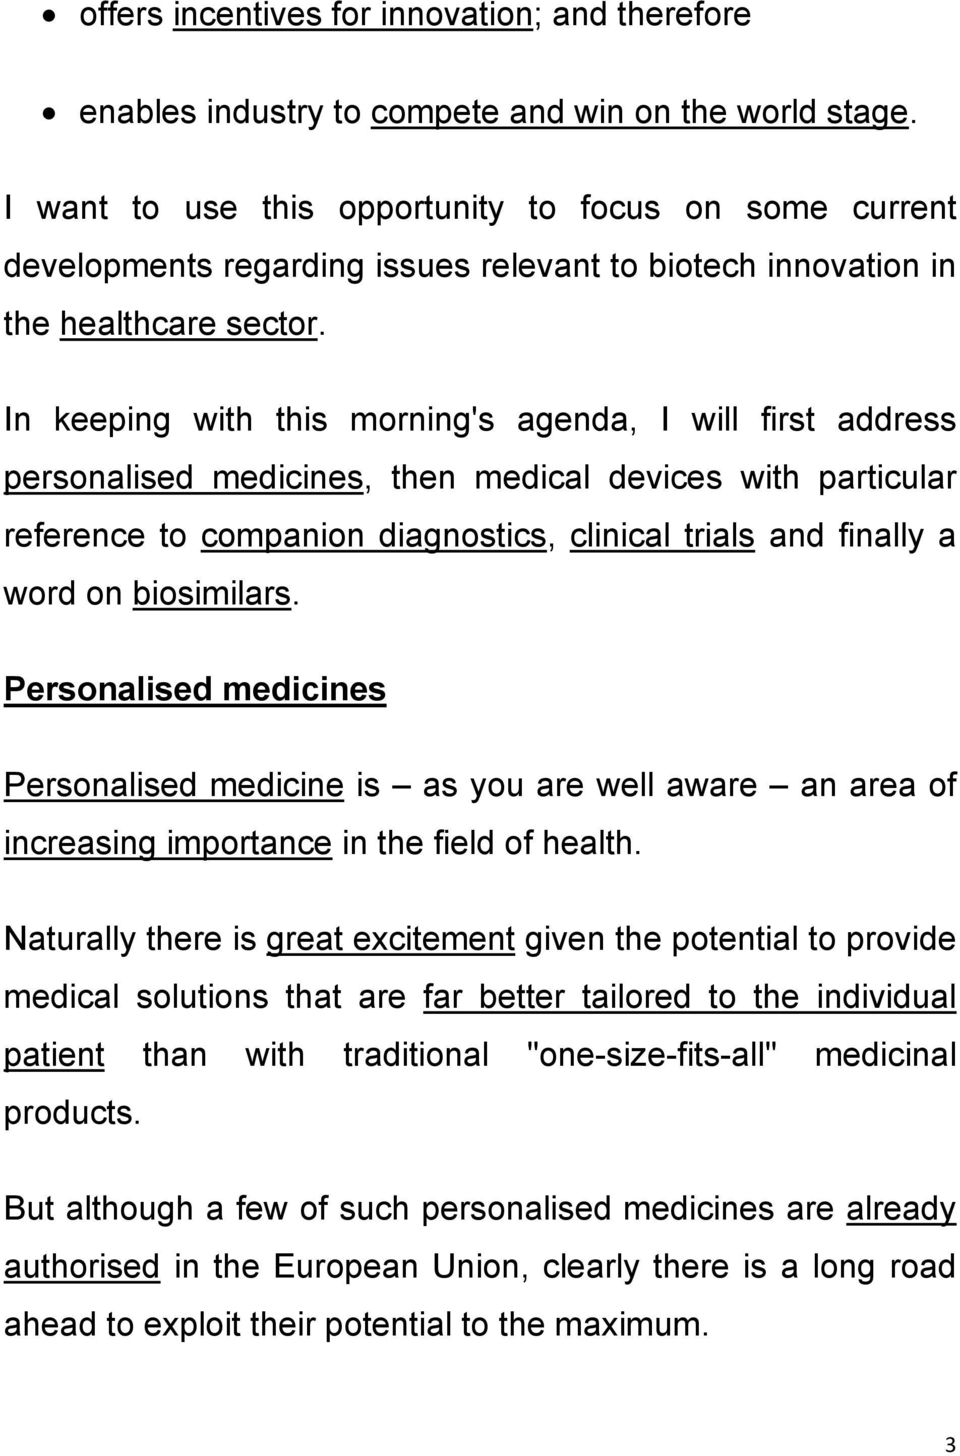 In keeping with this morning's agenda, I will first address personalised medicines, then medical devices with particular reference to companion diagnostics, clinical trials and finally a word on